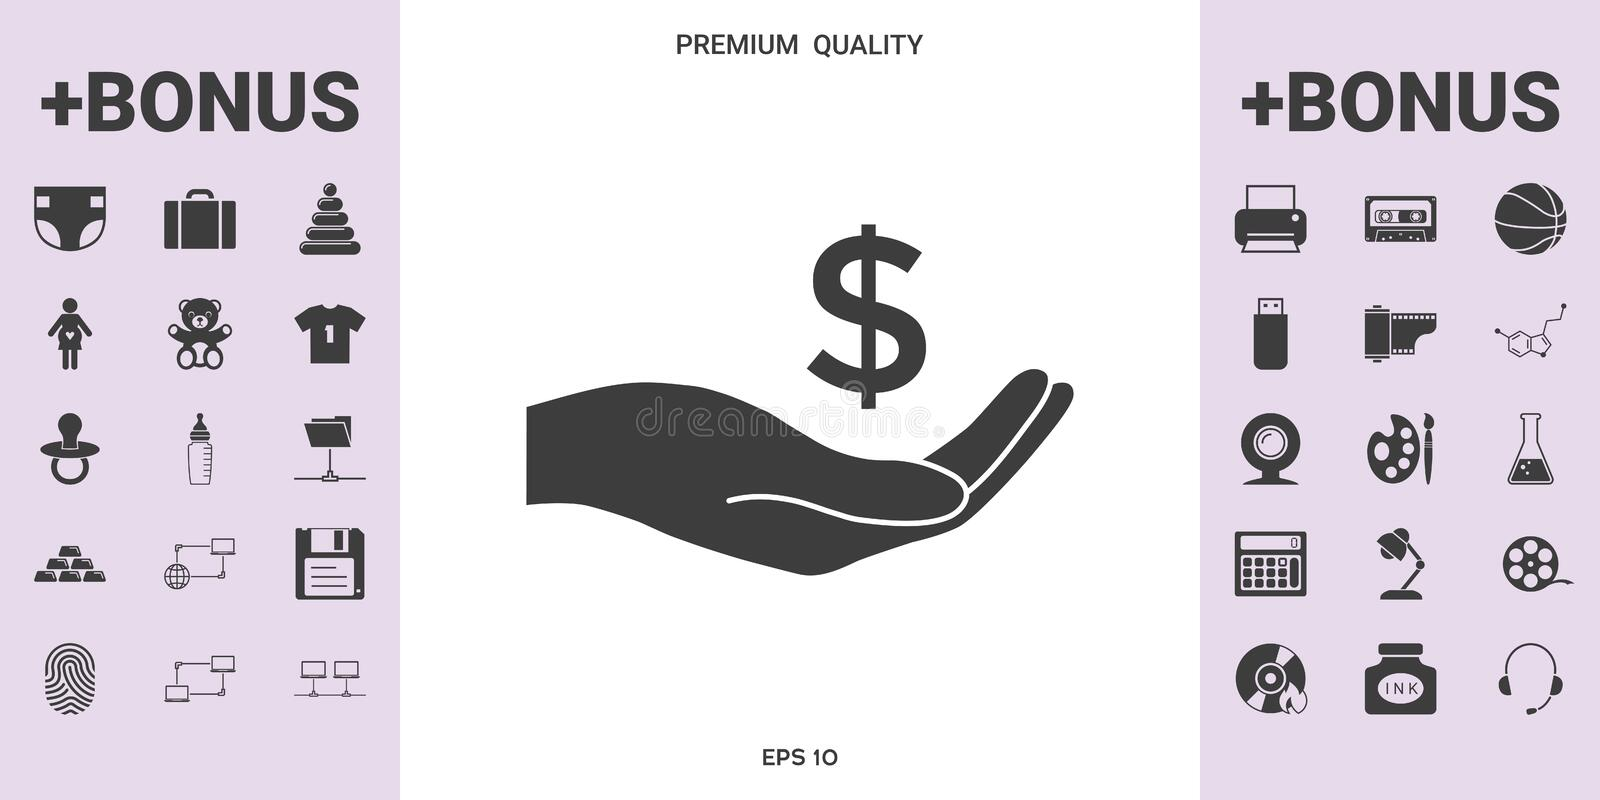 Money in hand, dollar symbol icon - graphic elements for your design vector illustration